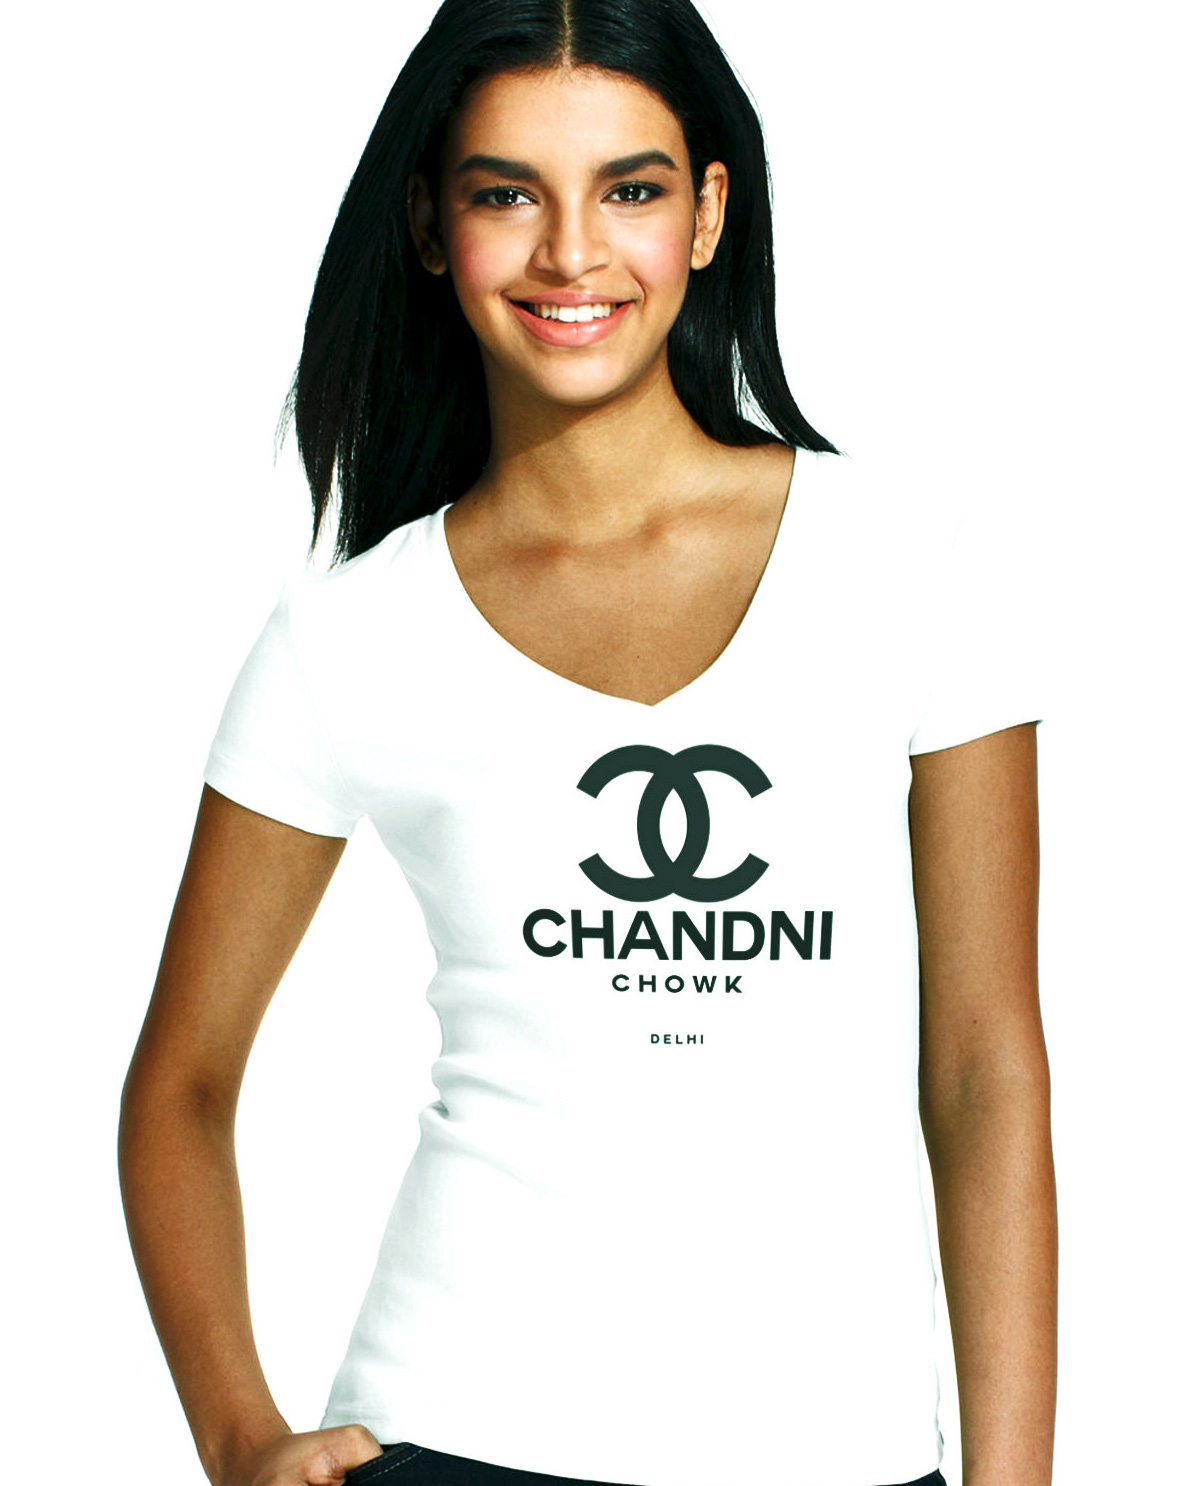 South Asian female model wearing Chandni Chowk White V Neck South Asian Desi Themed Graphic Design t.shirts by Brown Man Clothing Co.